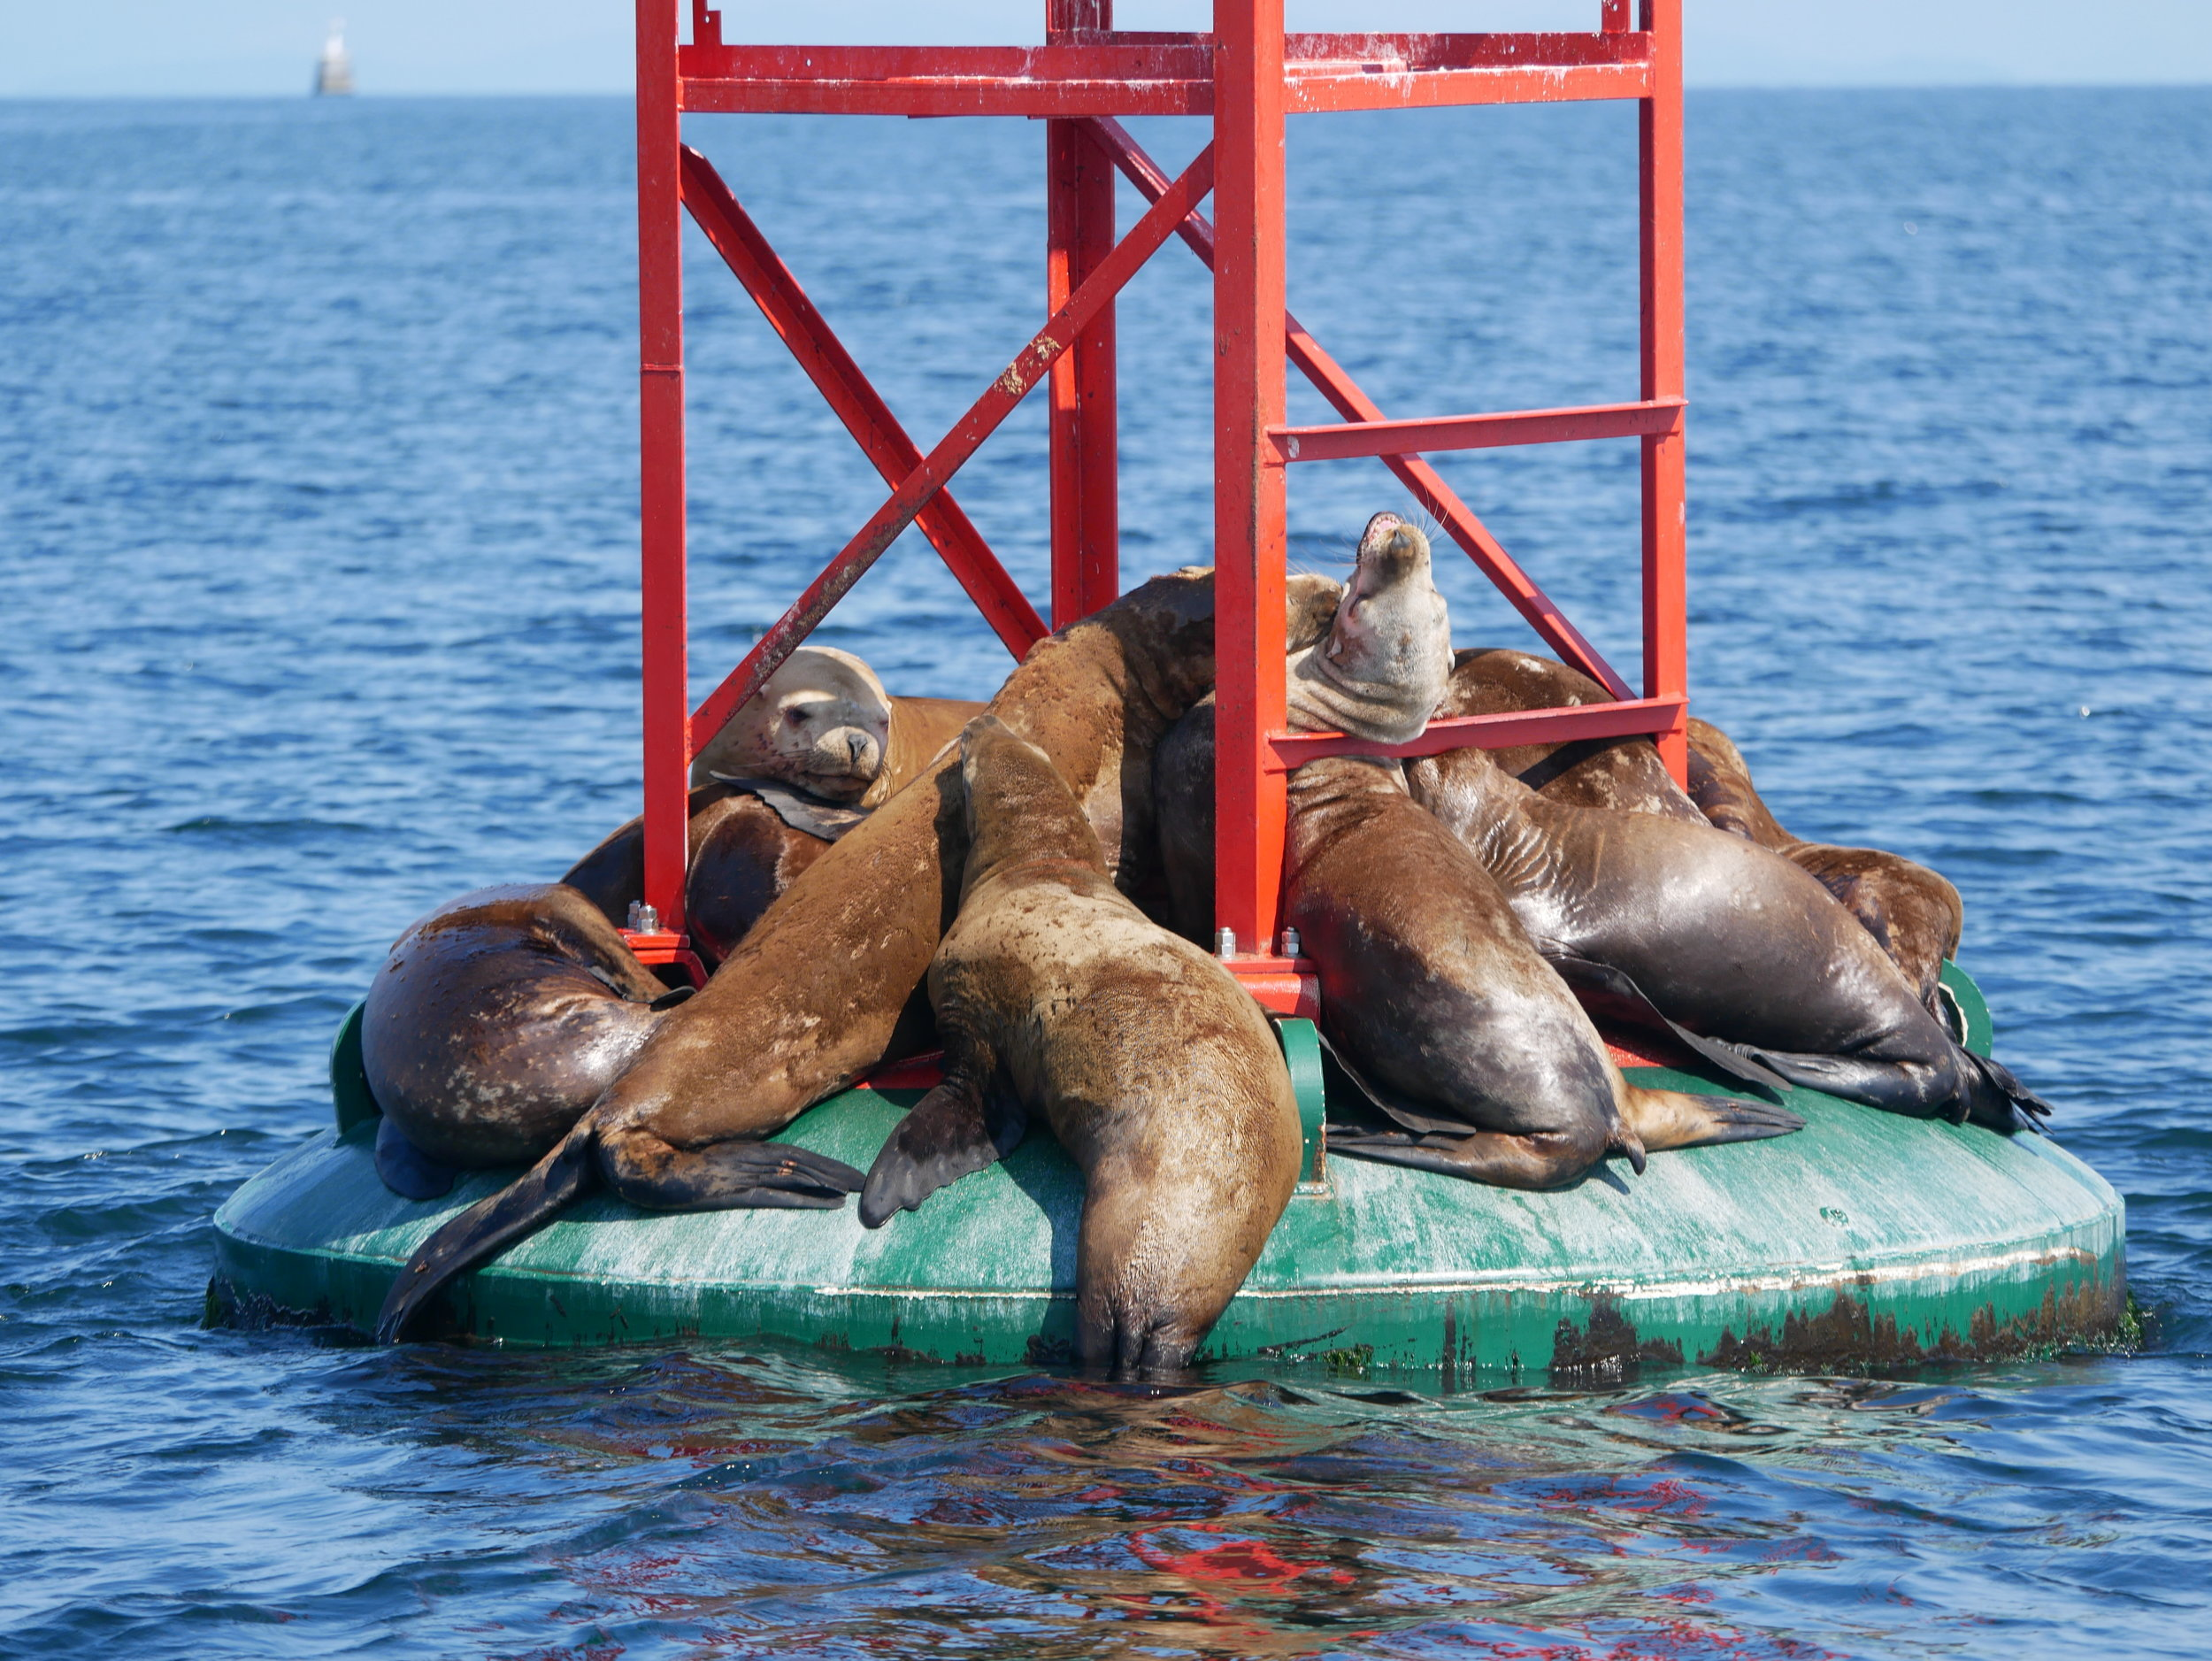 The sea lion in the centre doesn't look so comfortable! Photo by Alanna Vivani